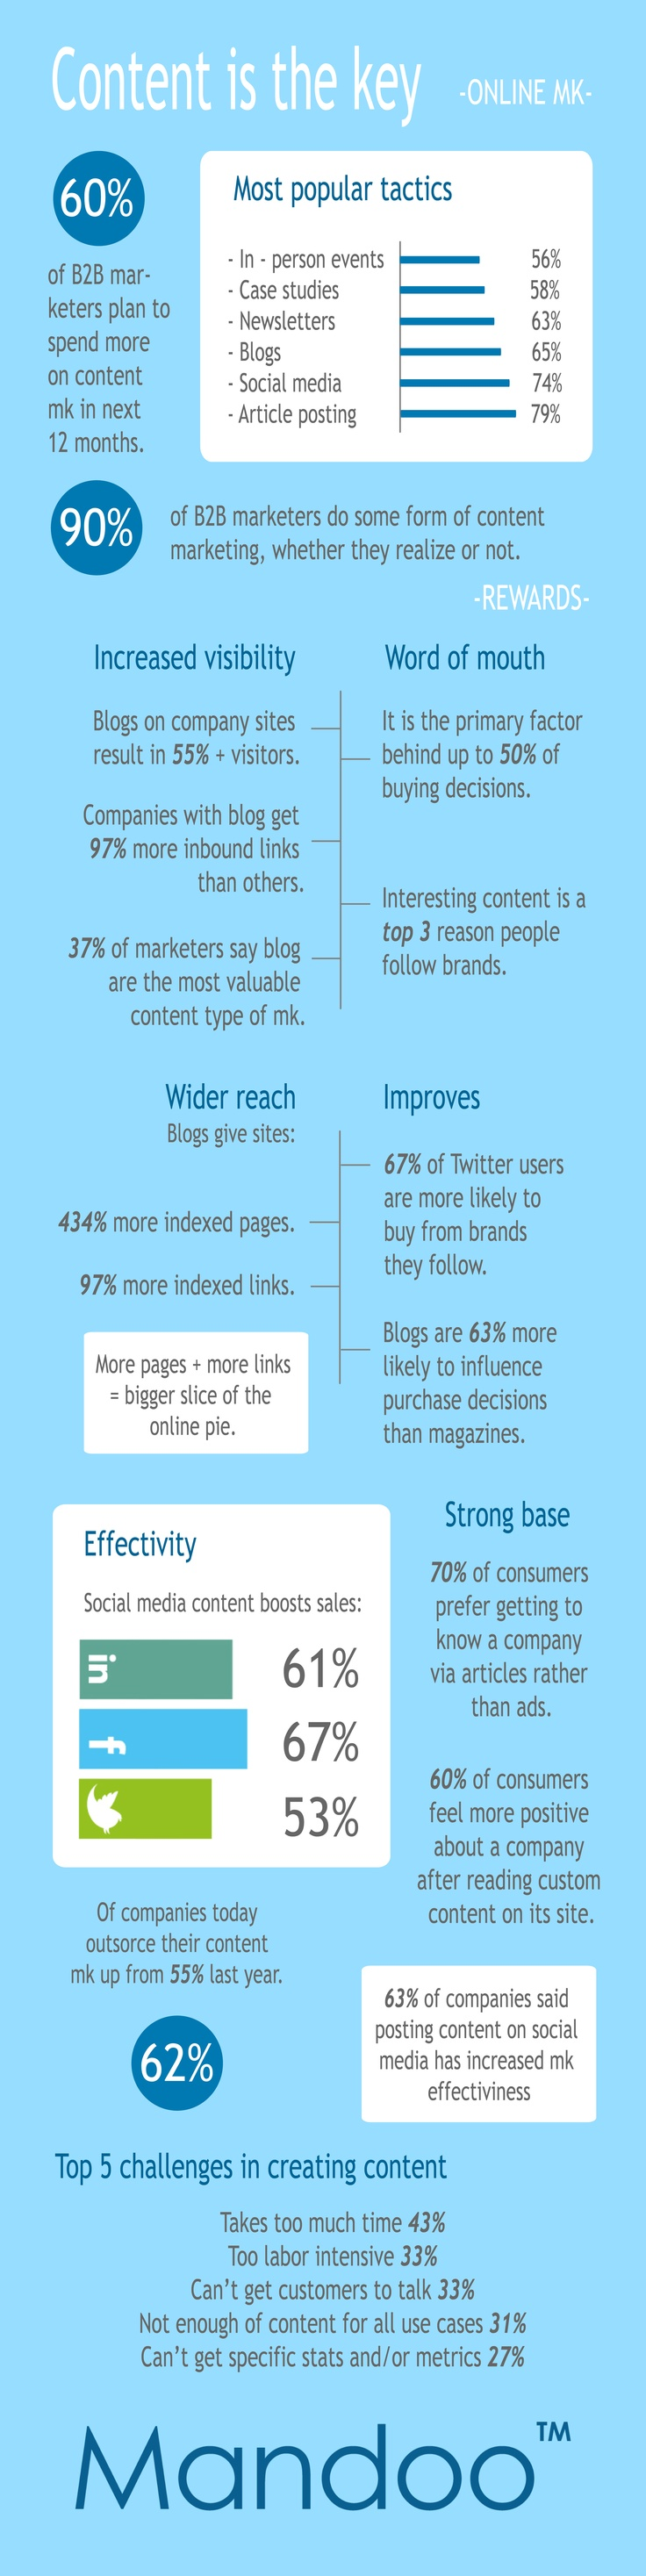 """#Onlinemarketing """"Content is the key"""""""